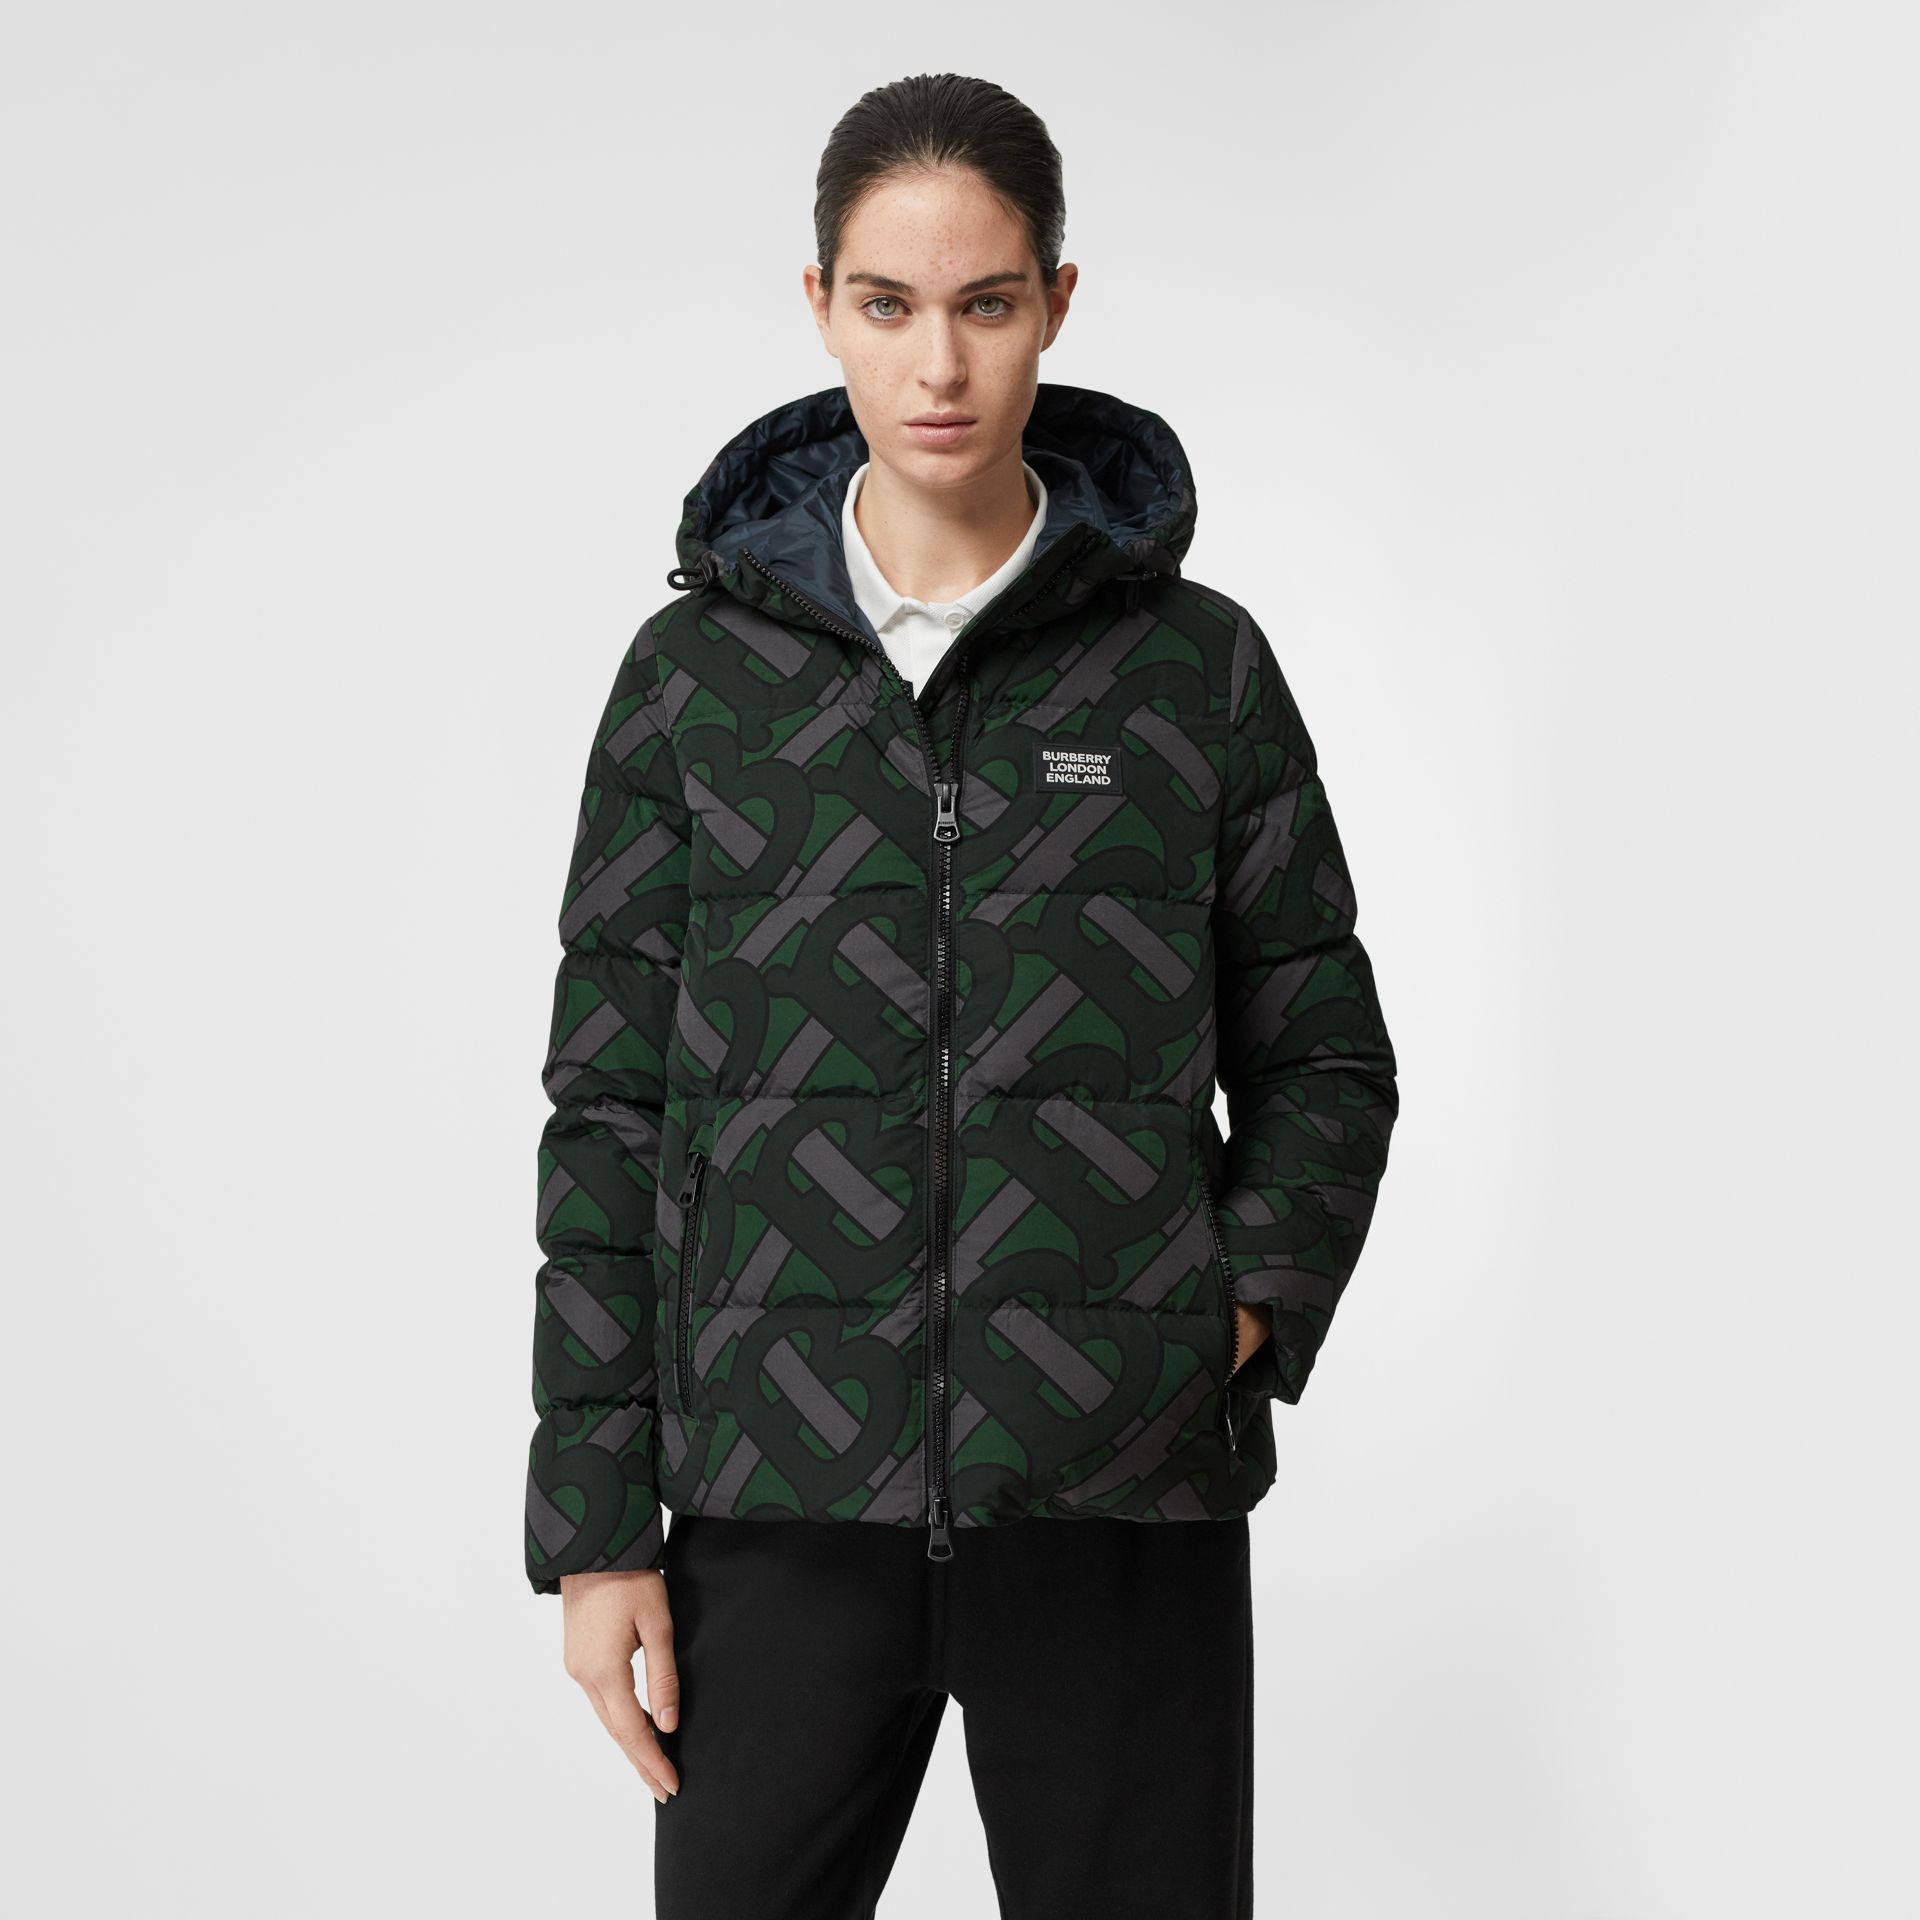 Monogram Print Puffer Jacket in Forest Green | Burberry - gallery image 6